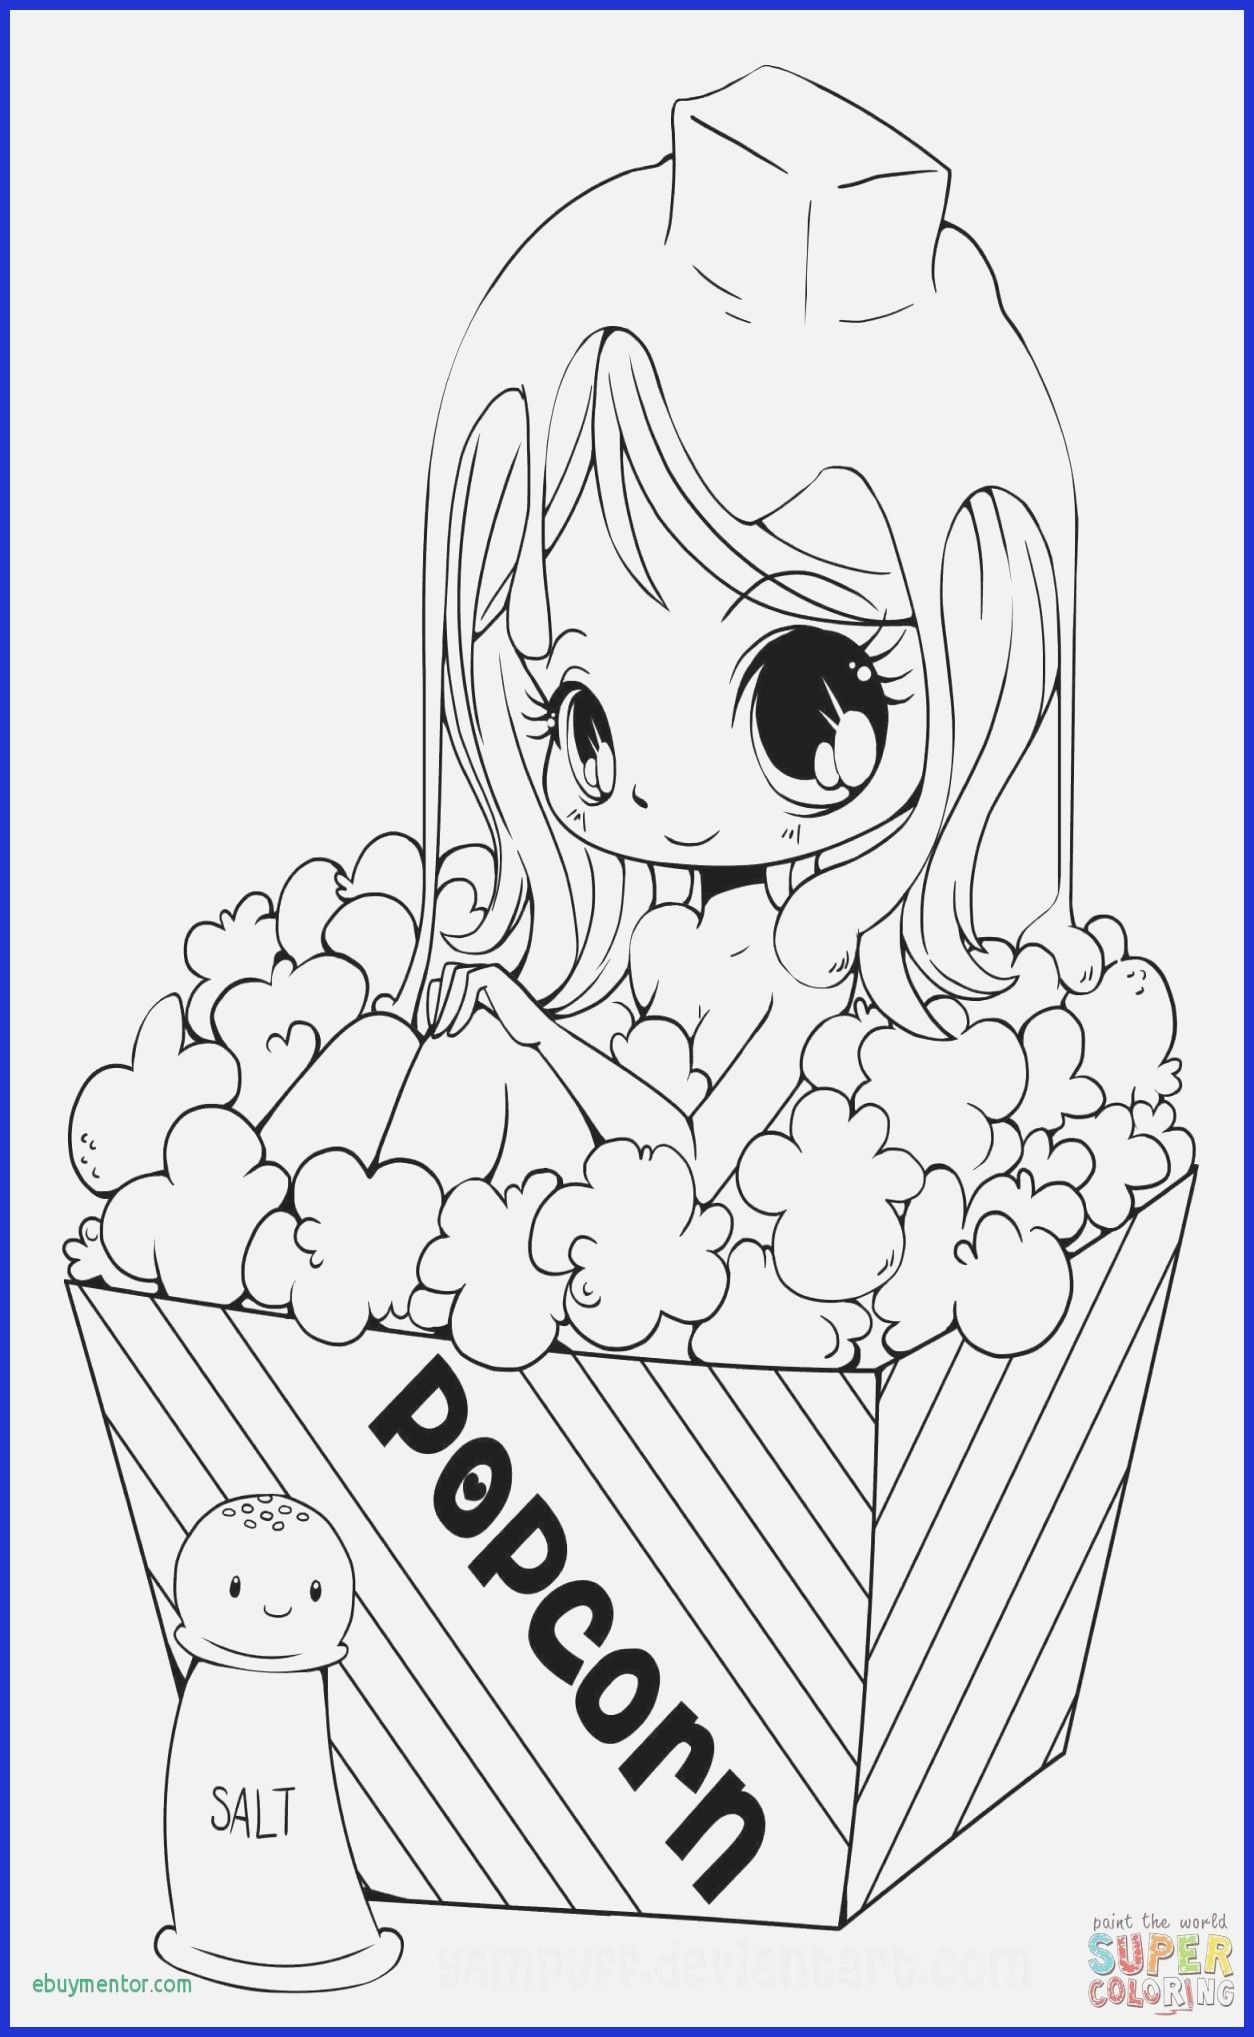 10 Coloring Games Abcya Coloring Games Cool Math Coloring Games To Play For Free Colori Chibi Coloring Pages Cartoon Coloring Pages Princess Coloring Pages